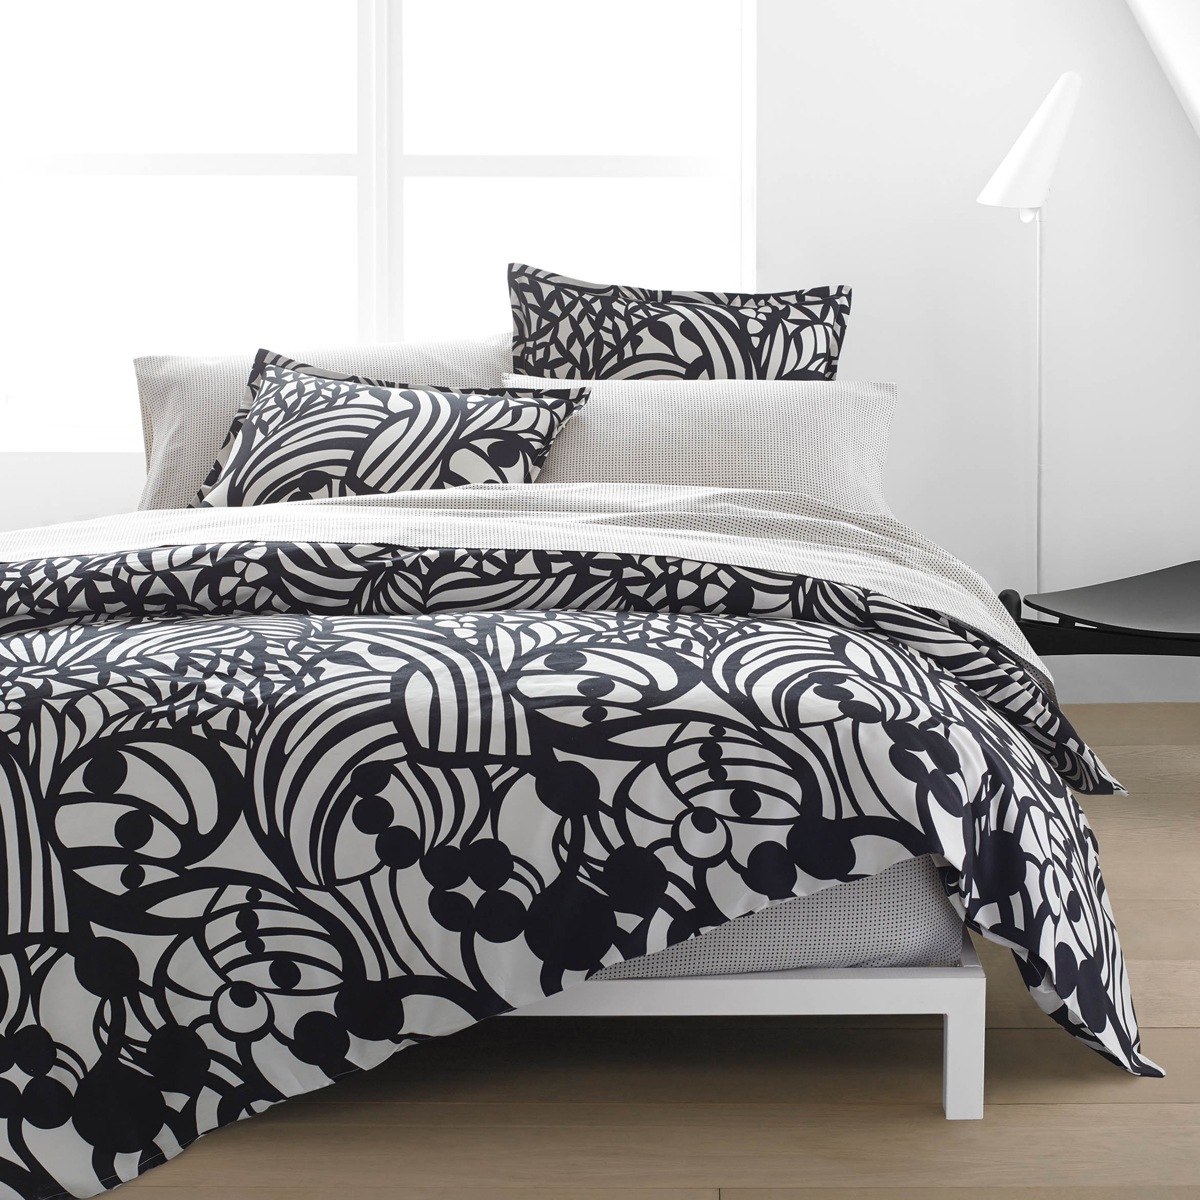 marimekko raakel duvet cover set twin marimekko raakel muru percale bedding. Black Bedroom Furniture Sets. Home Design Ideas